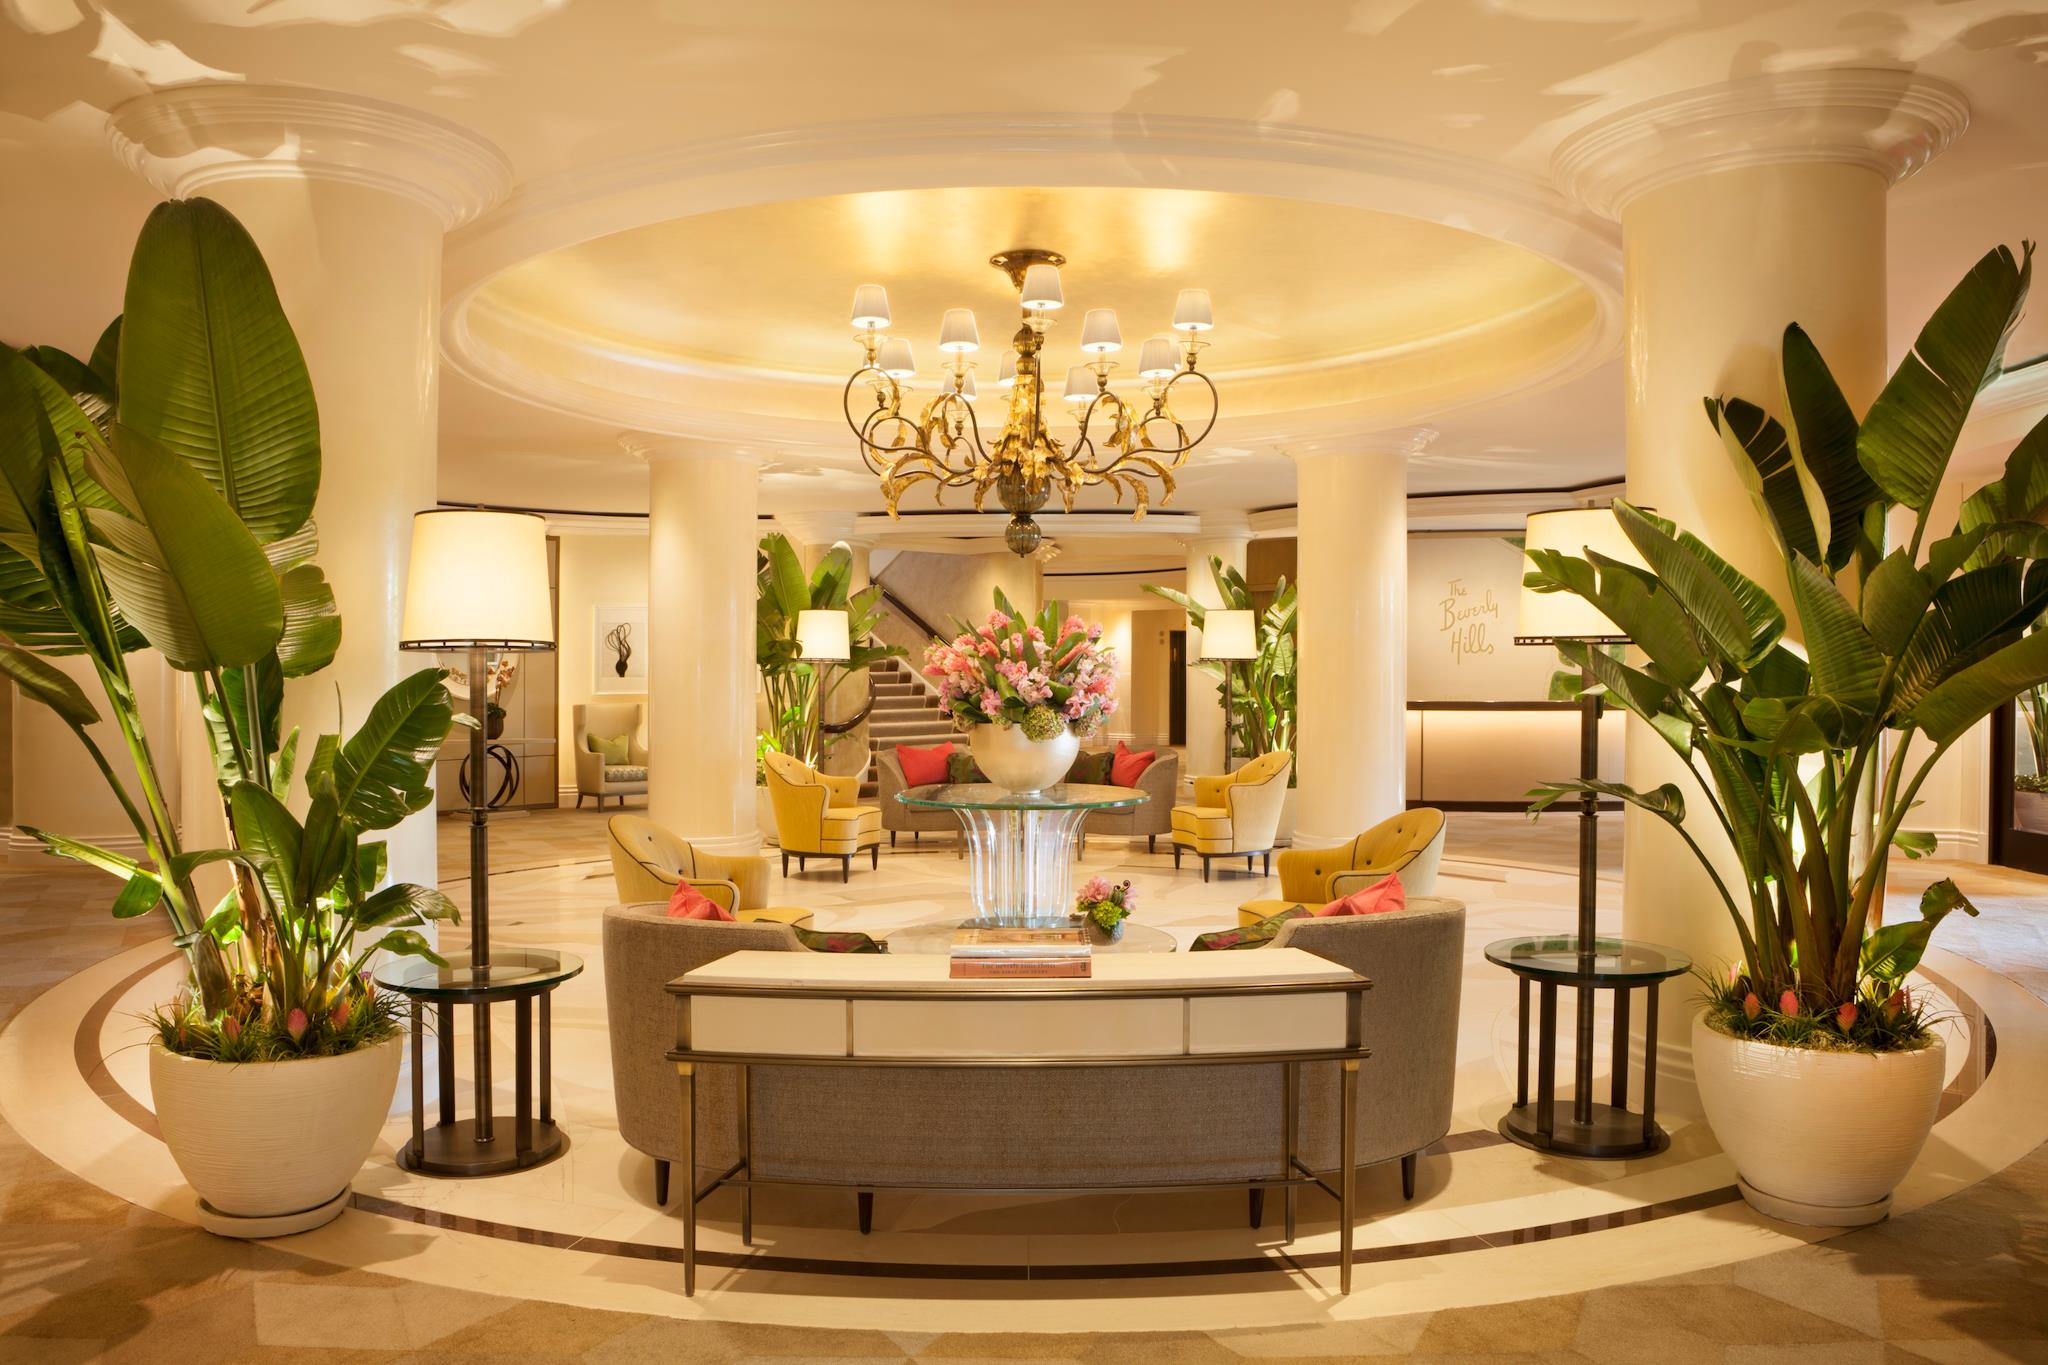 Tropical modern d cor at the beverly hills hotel Home decoration design